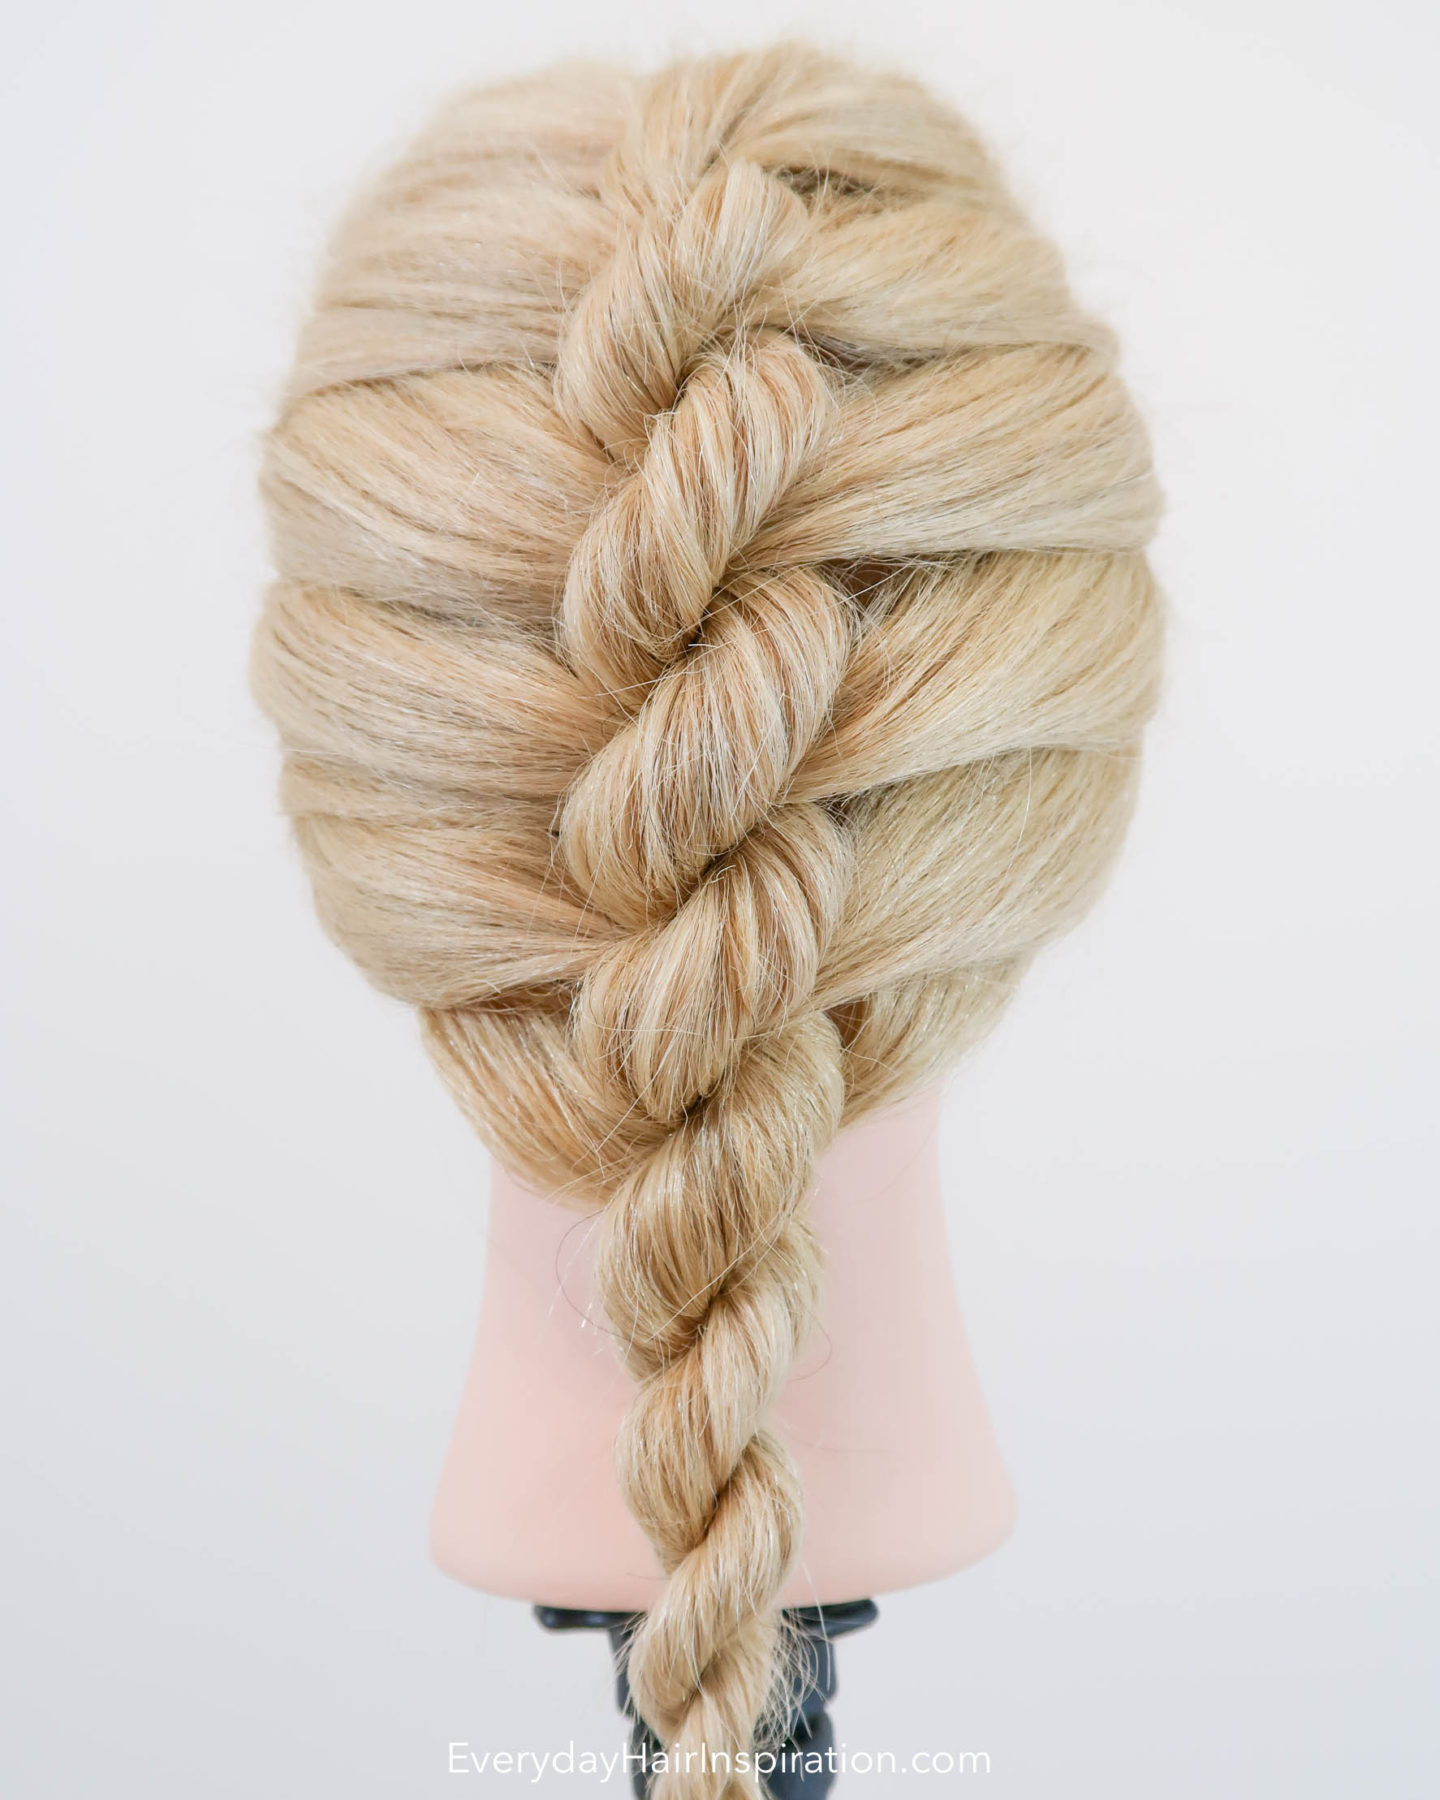 Blonde hairdresser doll with a single french rope braid in the hair - Looking at the braid straight on from the back